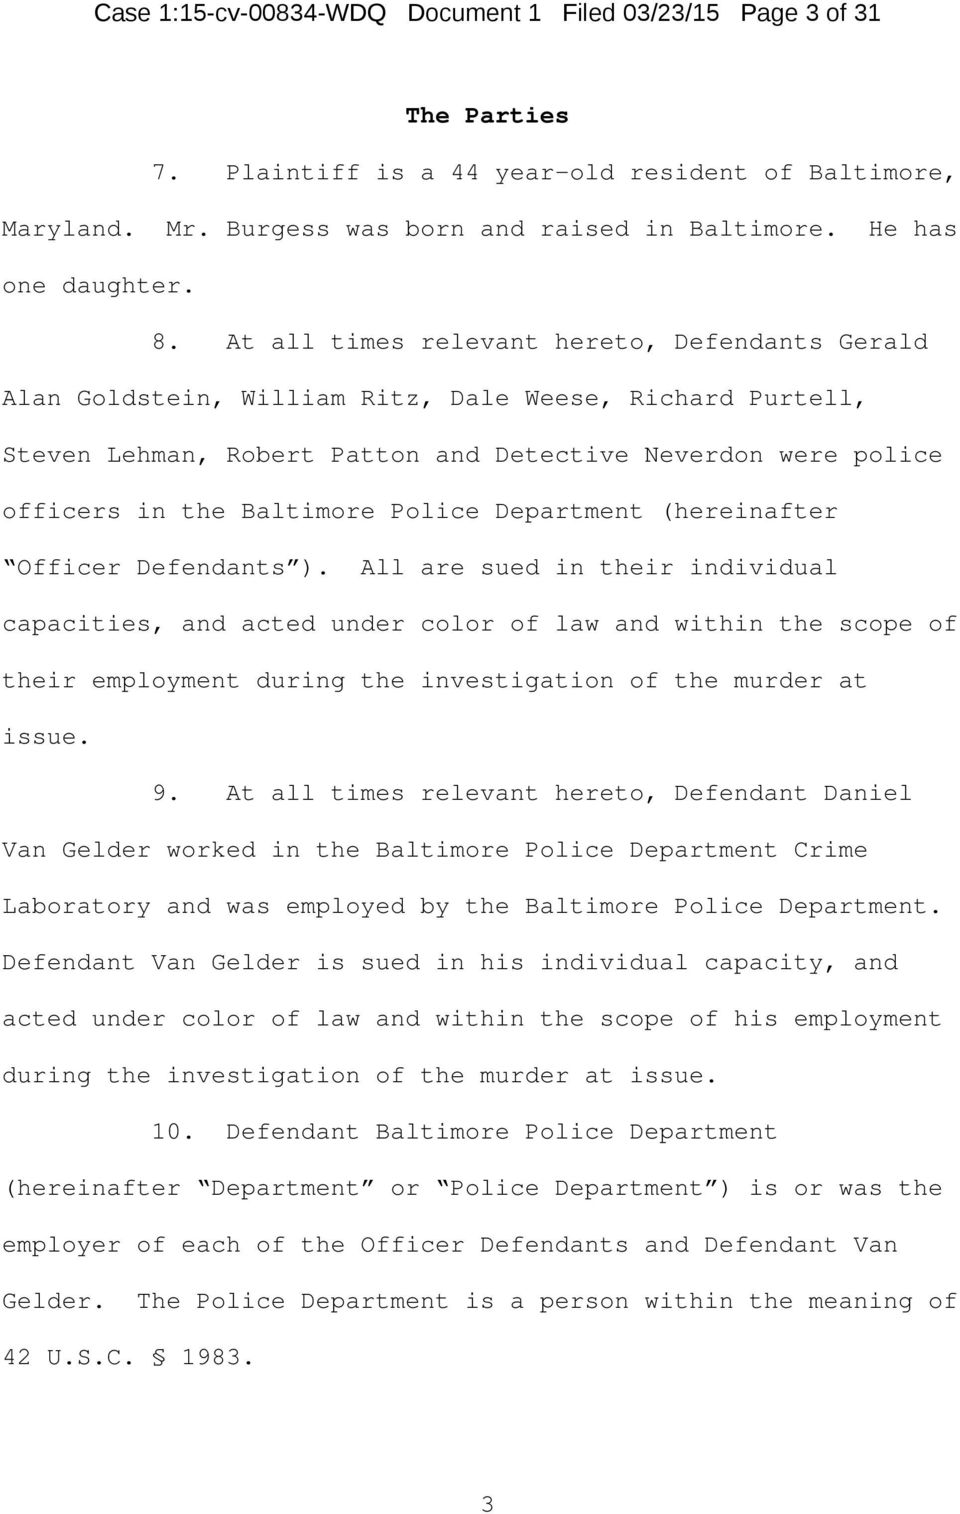 At all times relevant hereto, Defendants Gerald Alan Goldstein, William Ritz, Dale Weese, Richard Purtell, Steven Lehman, Robert Patton and Detective Neverdon were police officers in the Baltimore